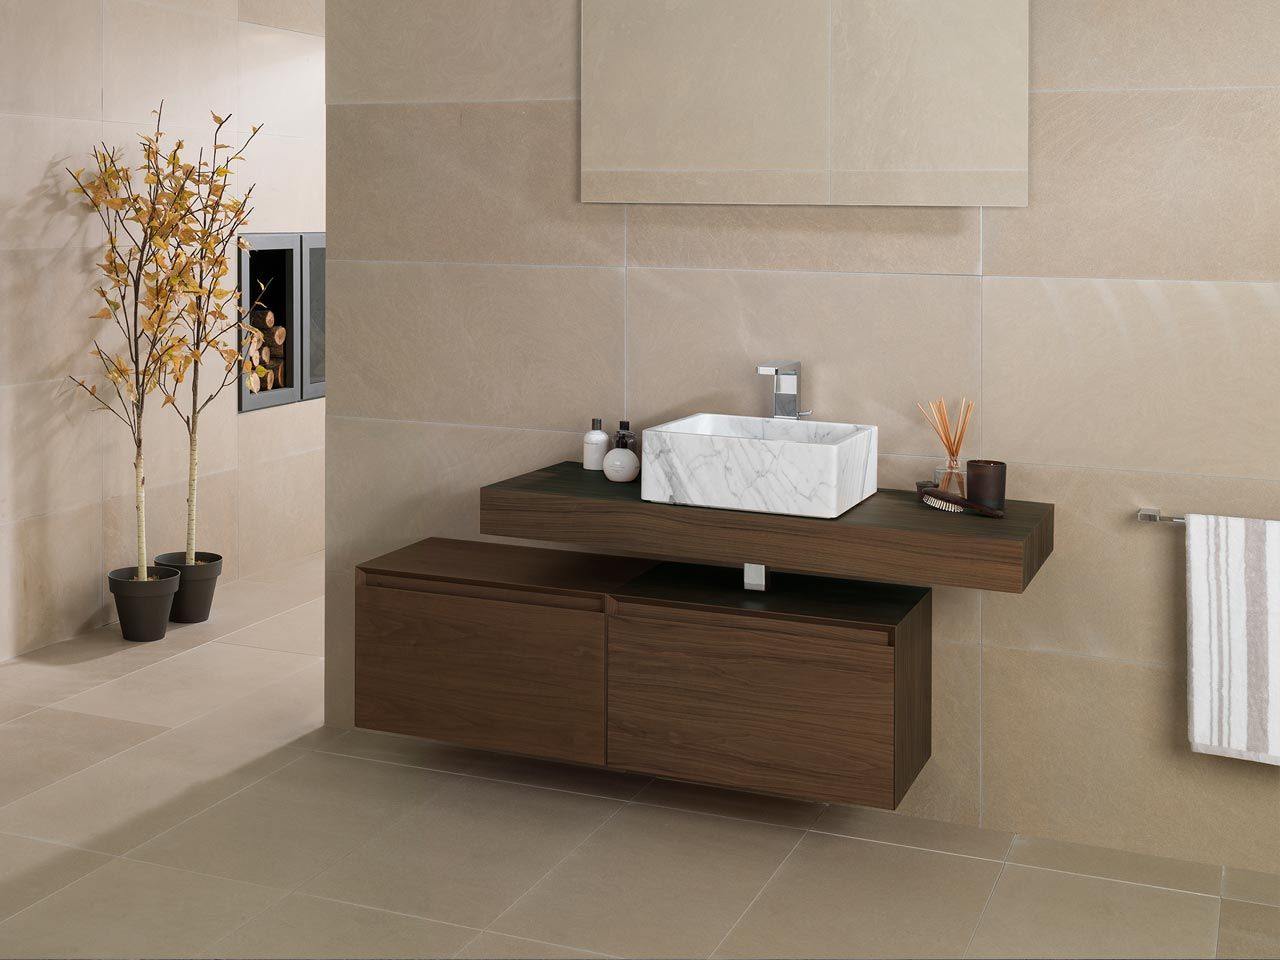 Porcelanosa bathroom sinks - Bath Mobiliario Ba O Porcelanosa